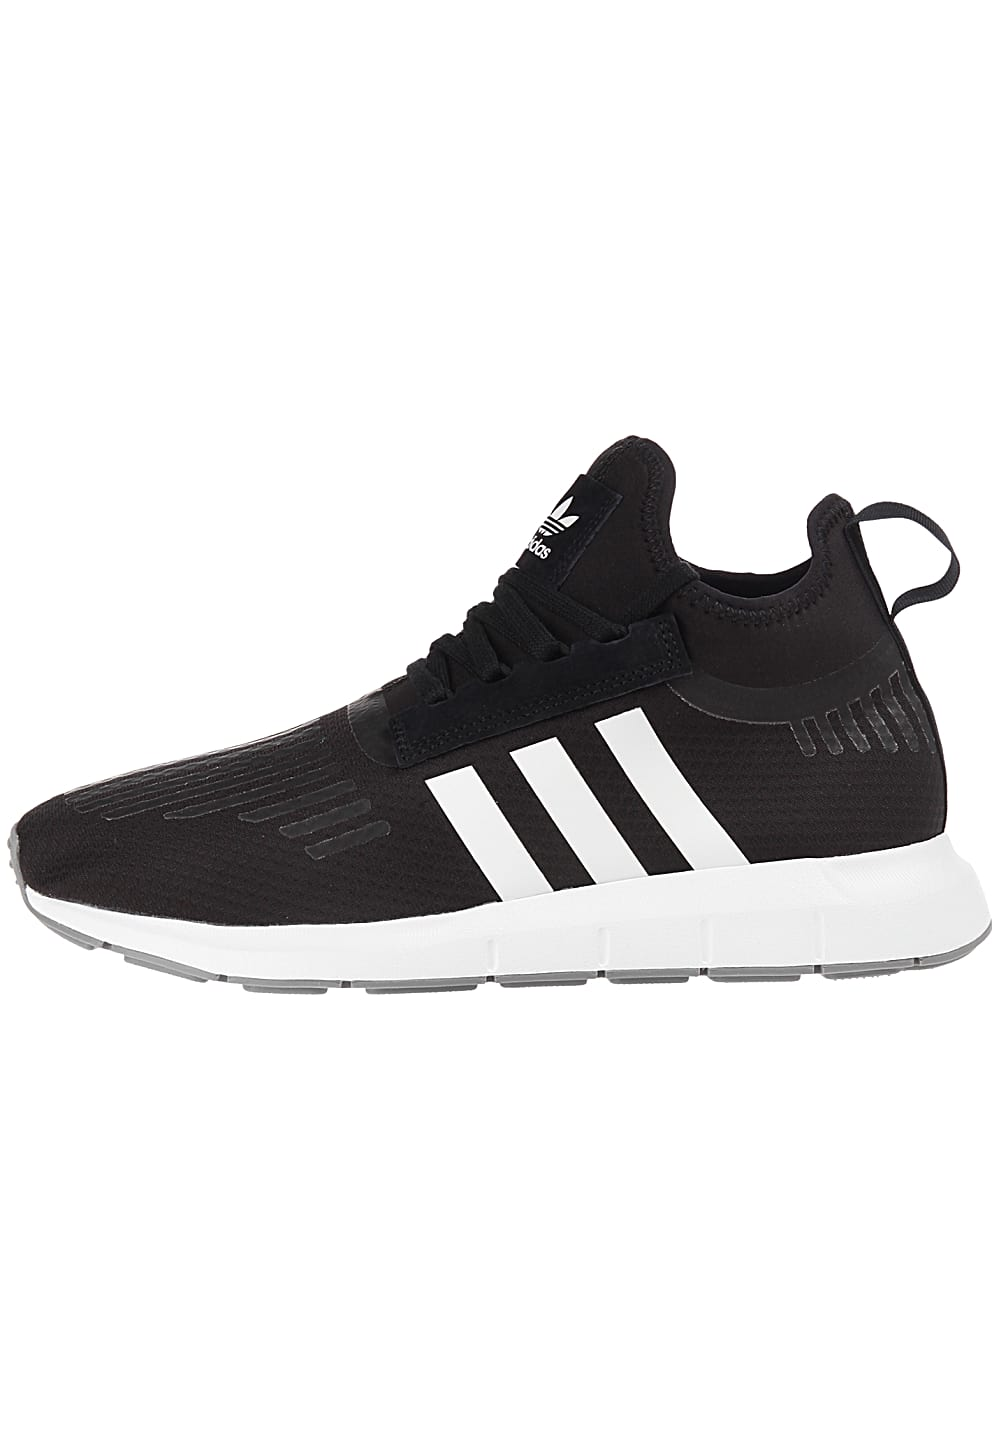 ADIDAS ORIGINALS Swift Run Barrier Sneakers Zwart